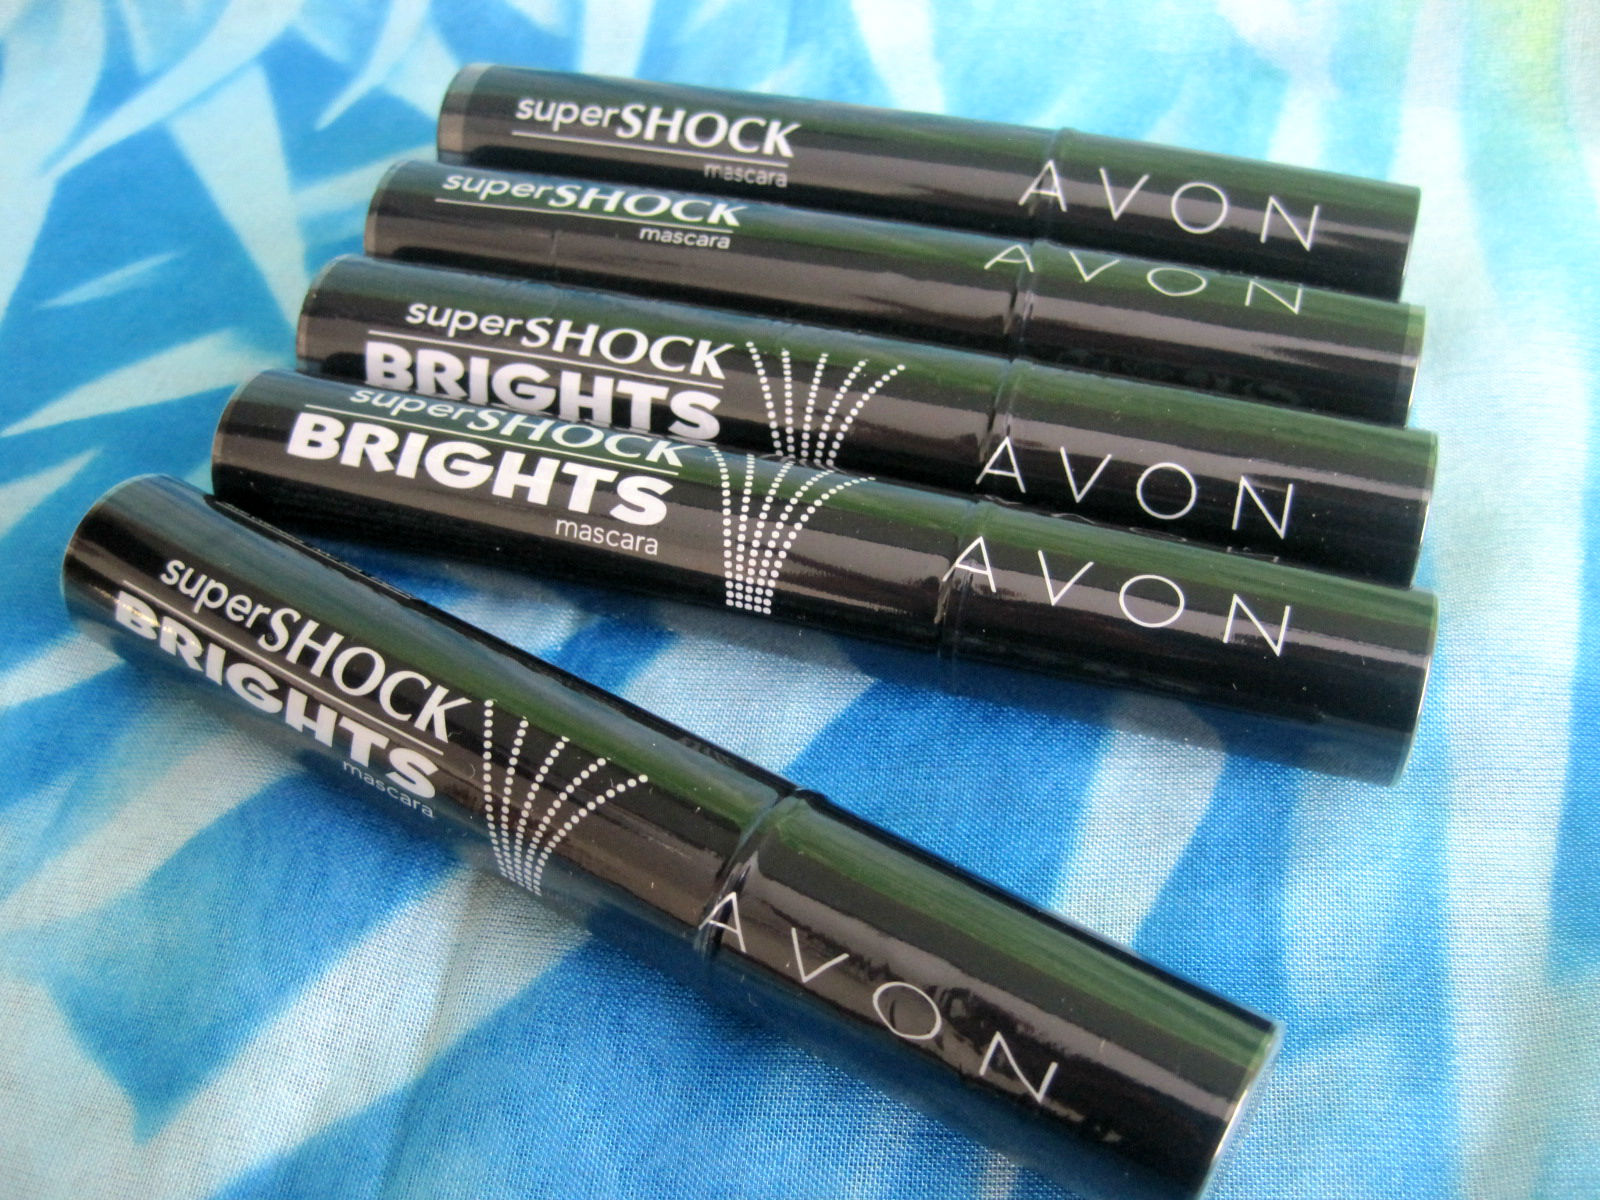 Avon super Shock, Avon supershock brights, mixoflife